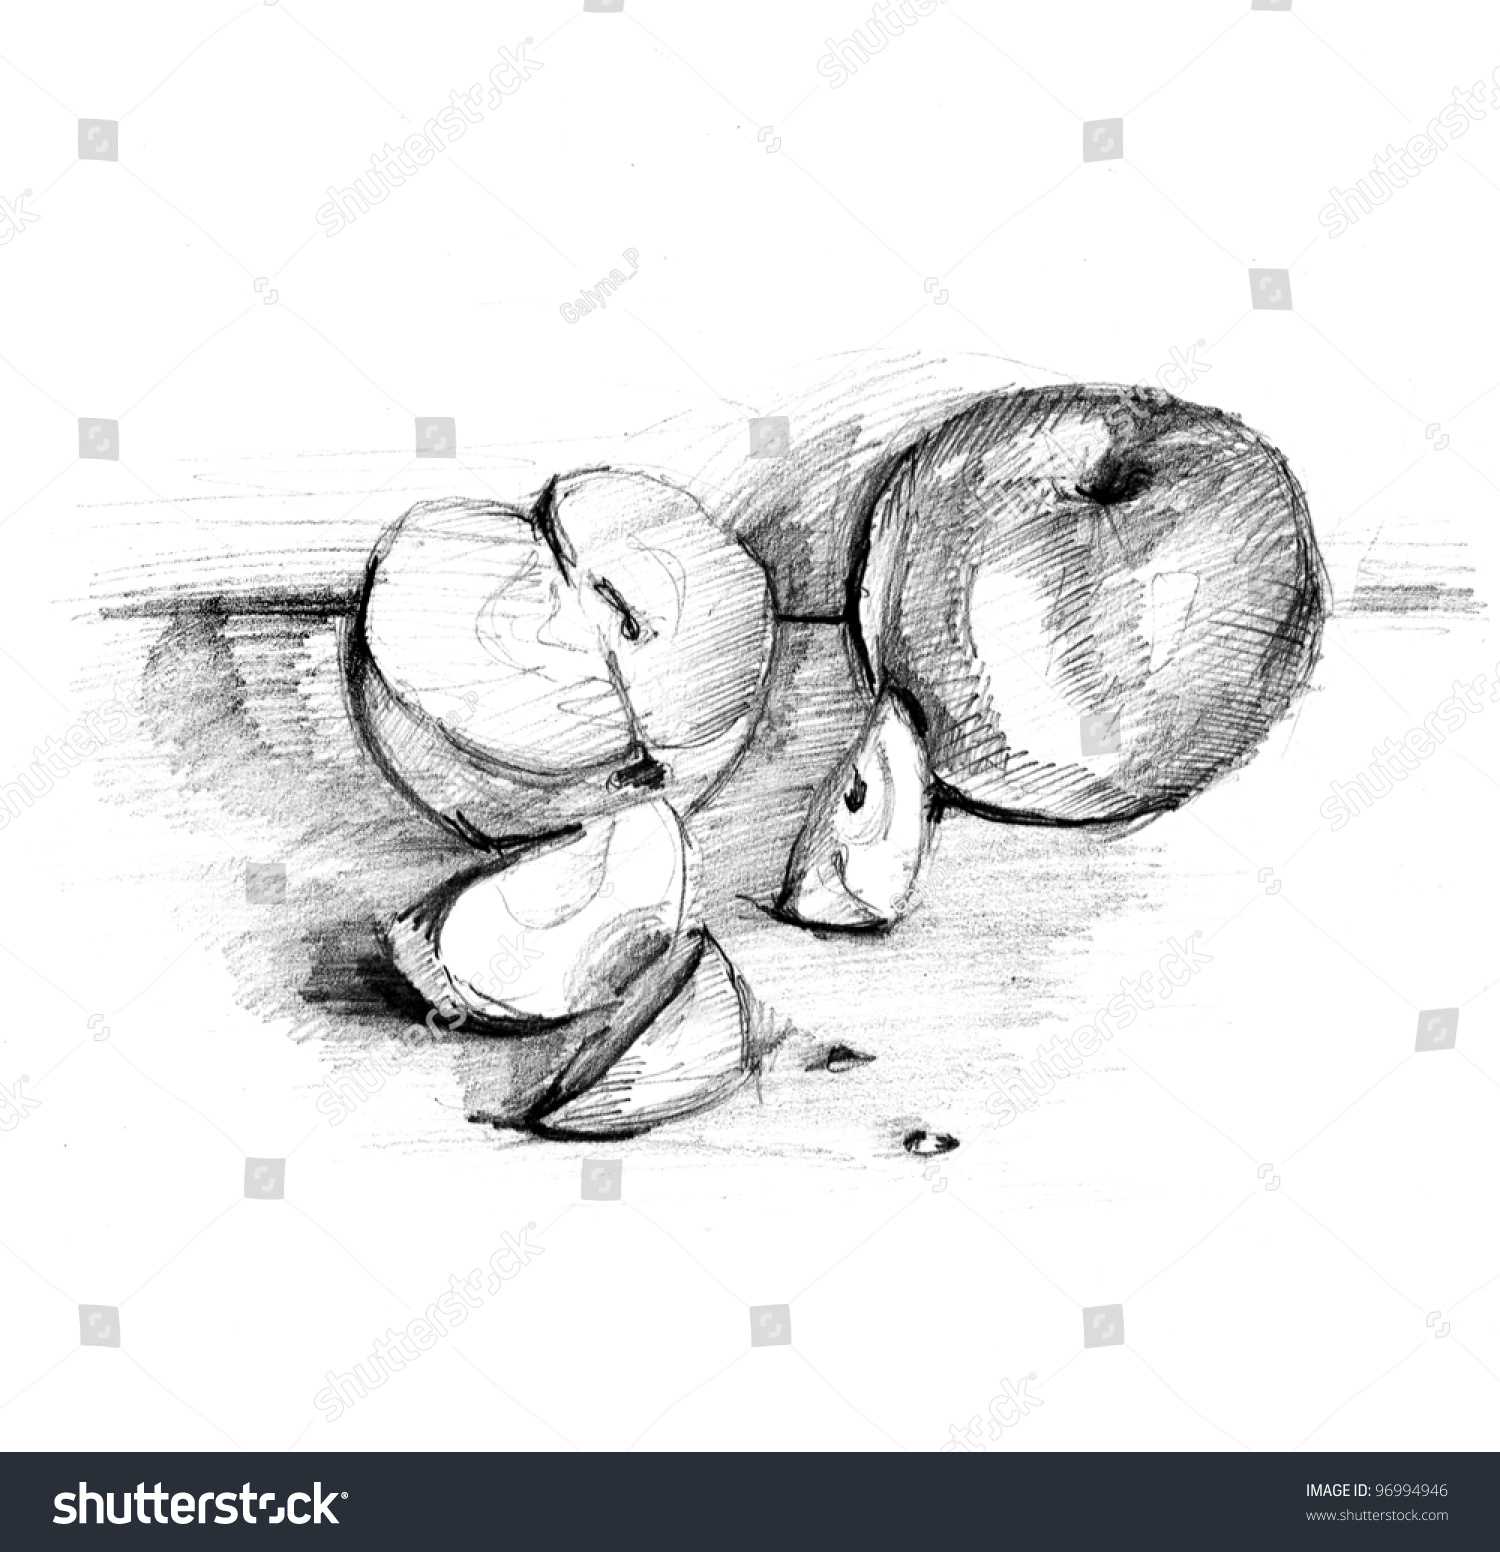 Handmade apple pencil draw lead pencil sketch of an apple healthy nutritious natural fruit